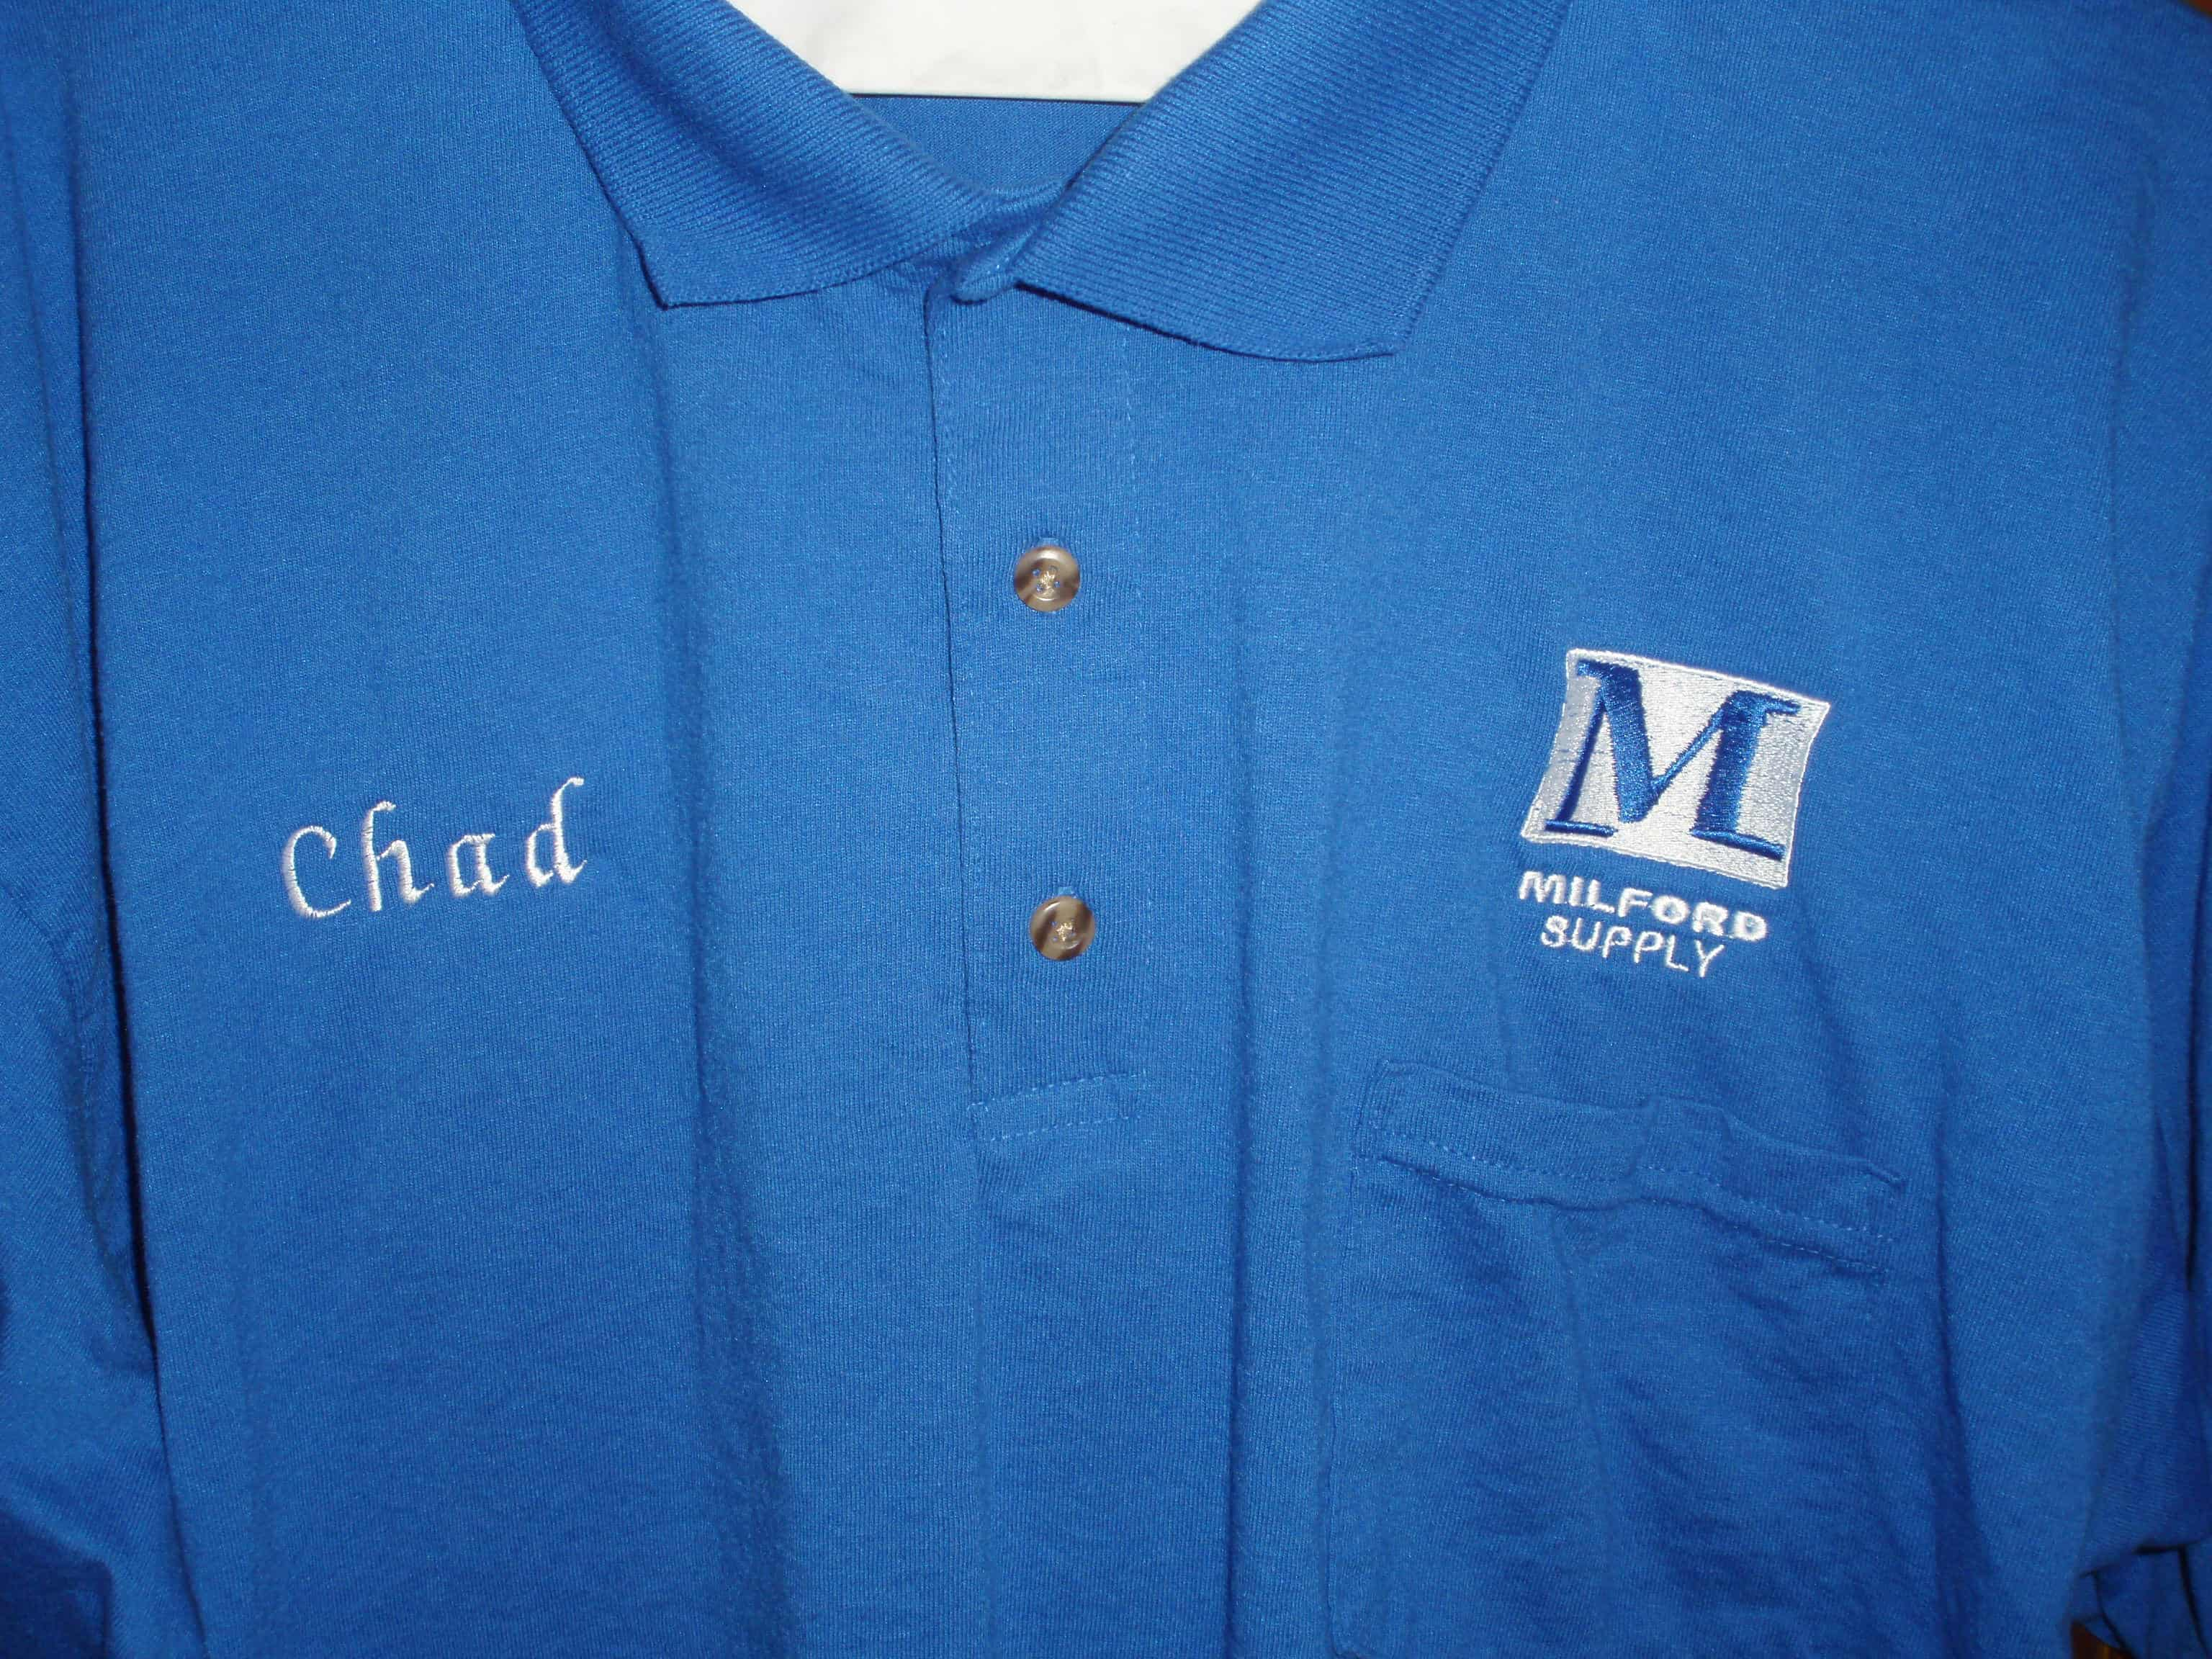 polo shirts with company name